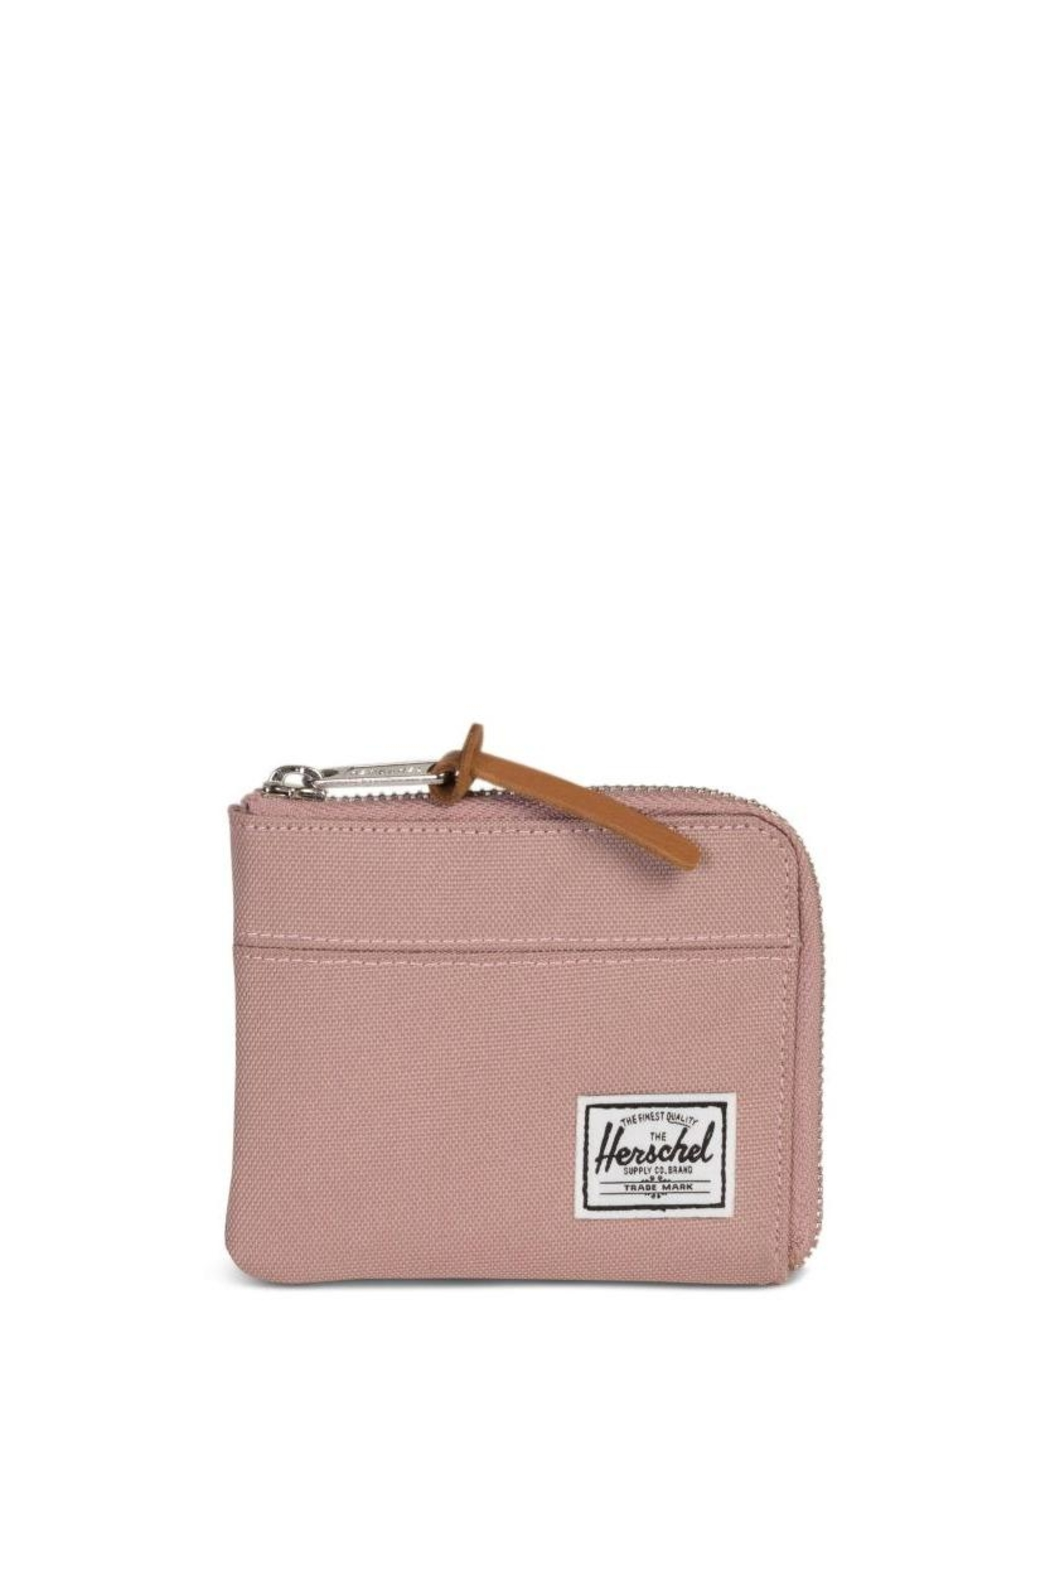 Herschel Supply Co. Pouch Style Wallet - Main Image